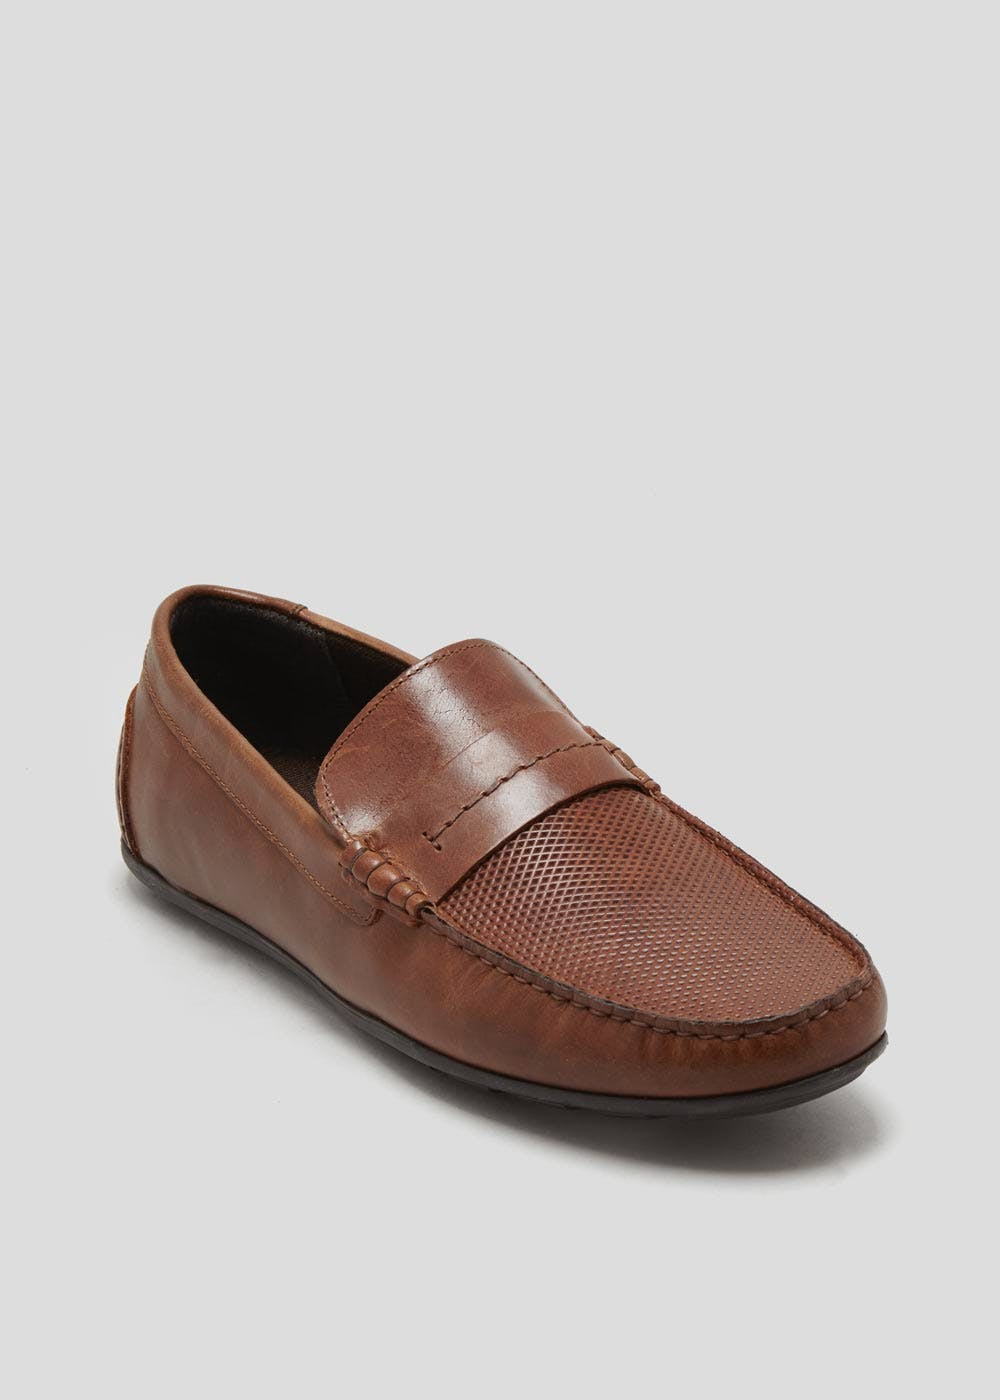 Real Leather Slip On Driver Loafers